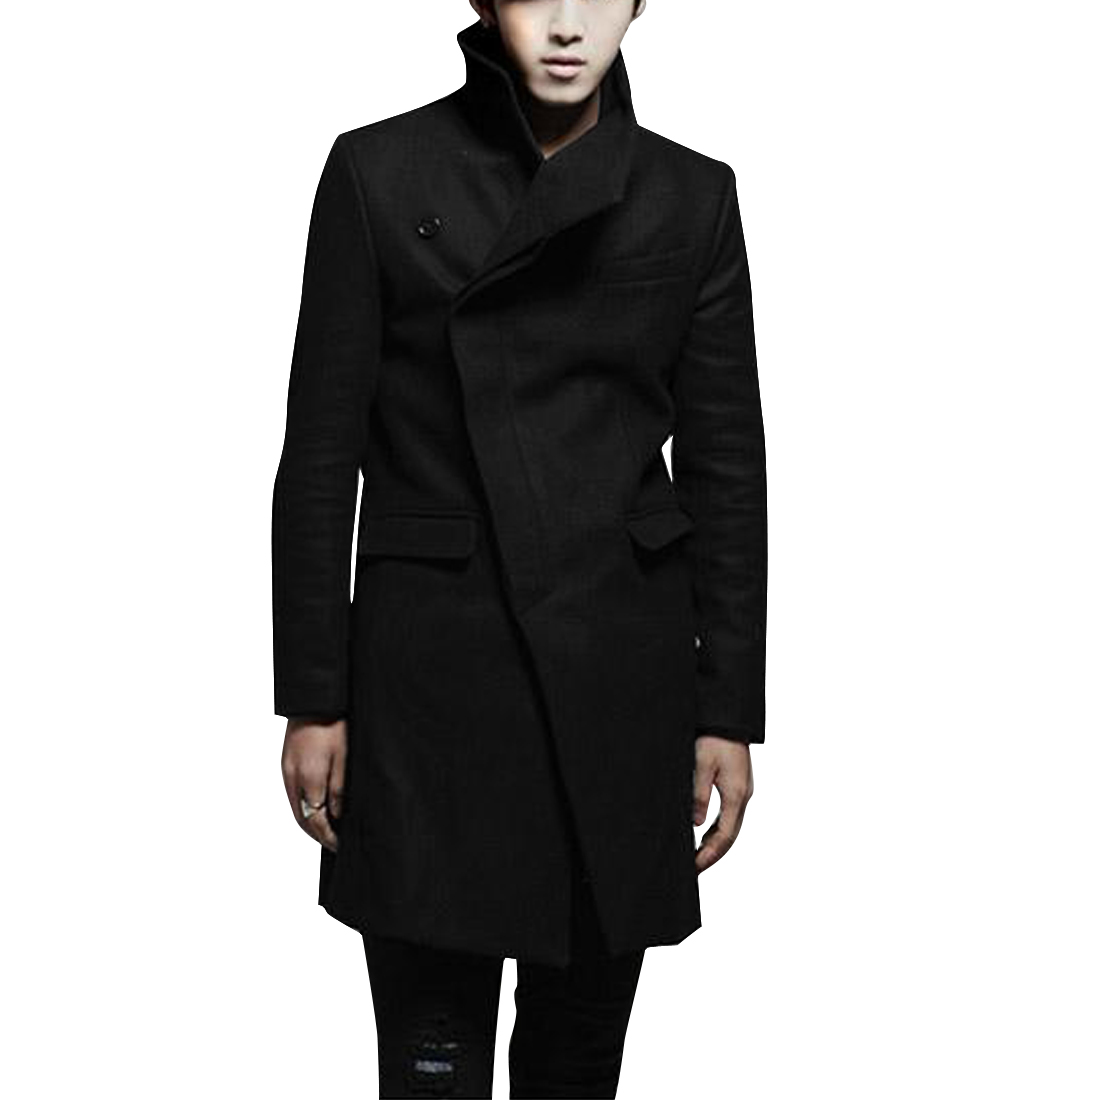 Man's Convertible Collar Black Warm Stylish Long Woolen Coat S